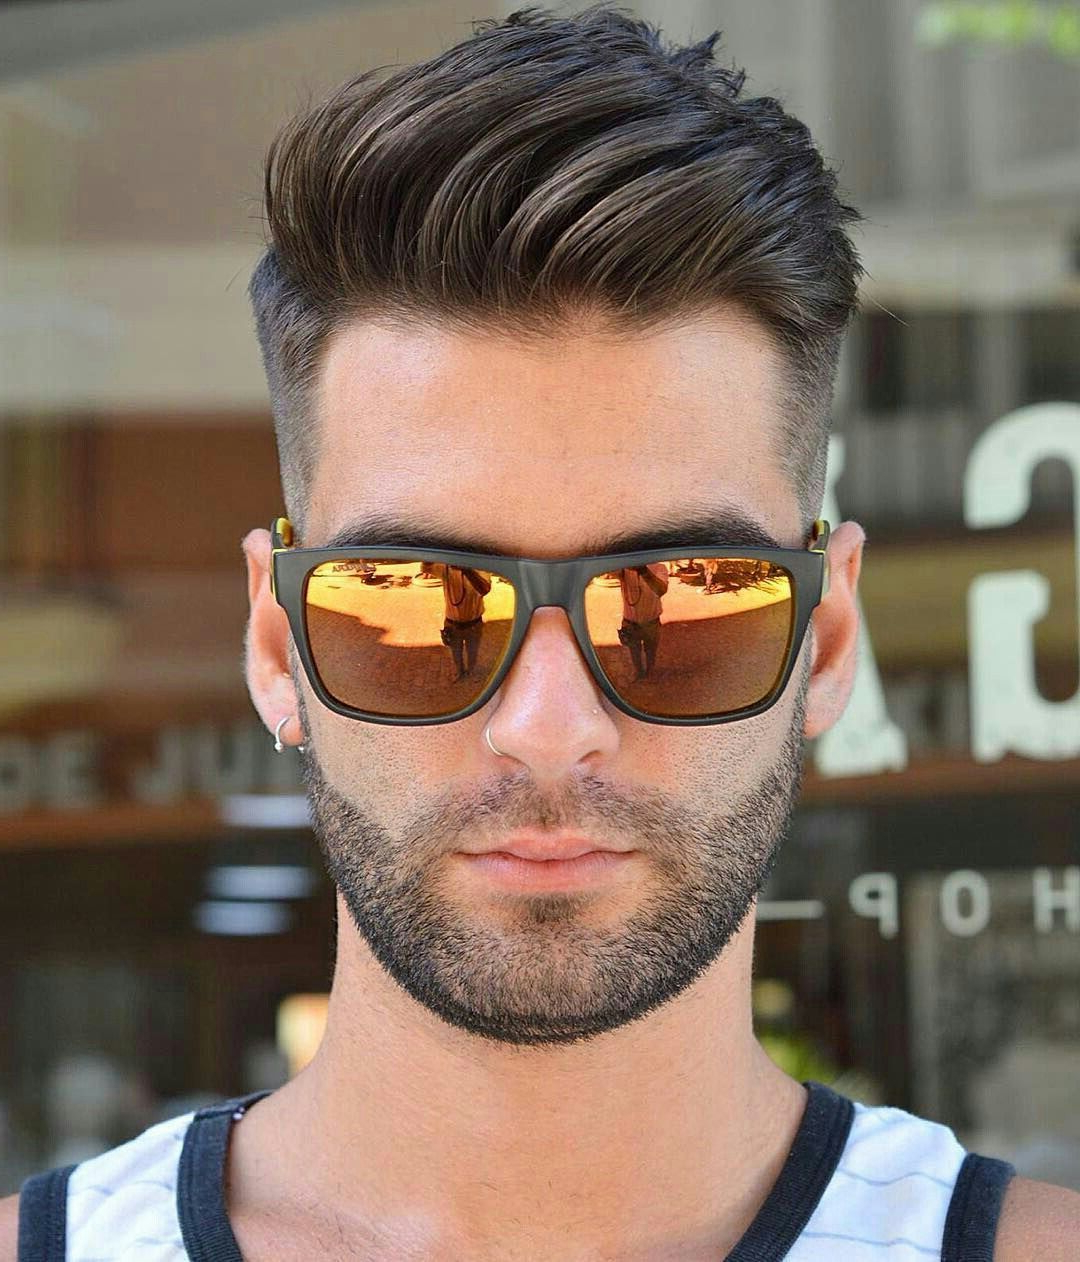 Hair Styles, Haircuts For Men (View 11 of 20)